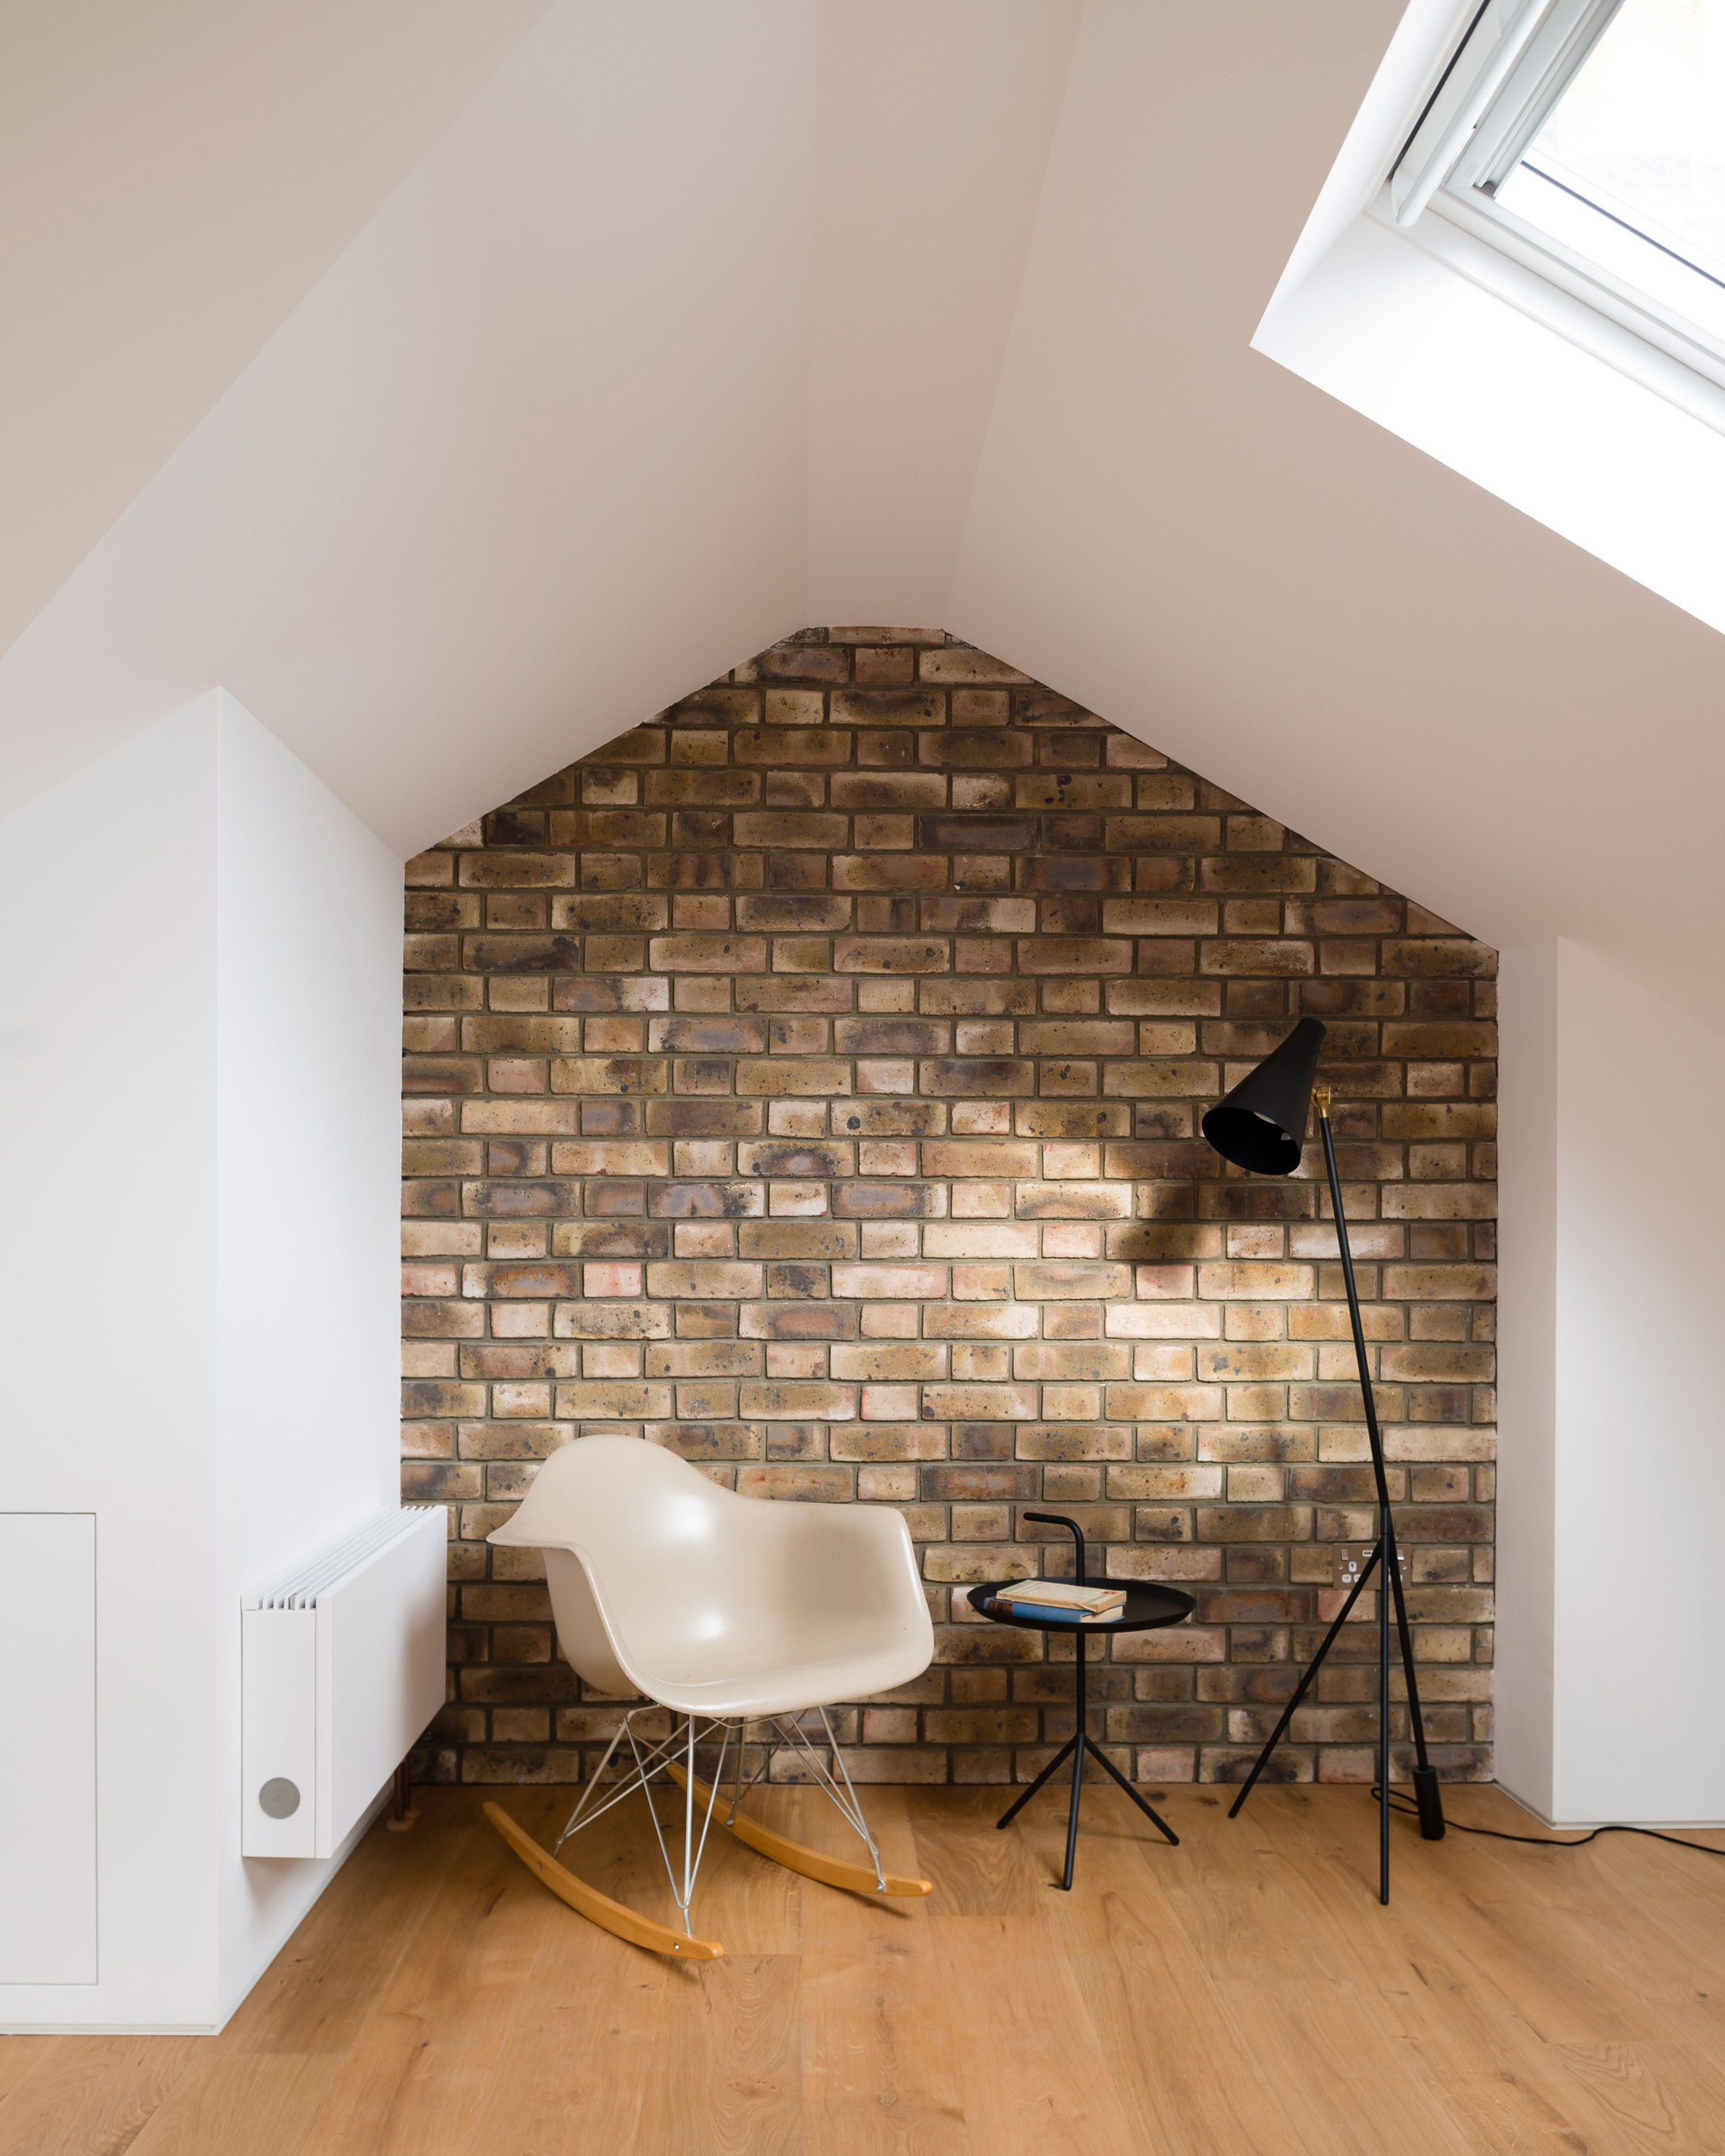 A reading nook with exposed brick wall and skylight project escape to the roof by a small studio